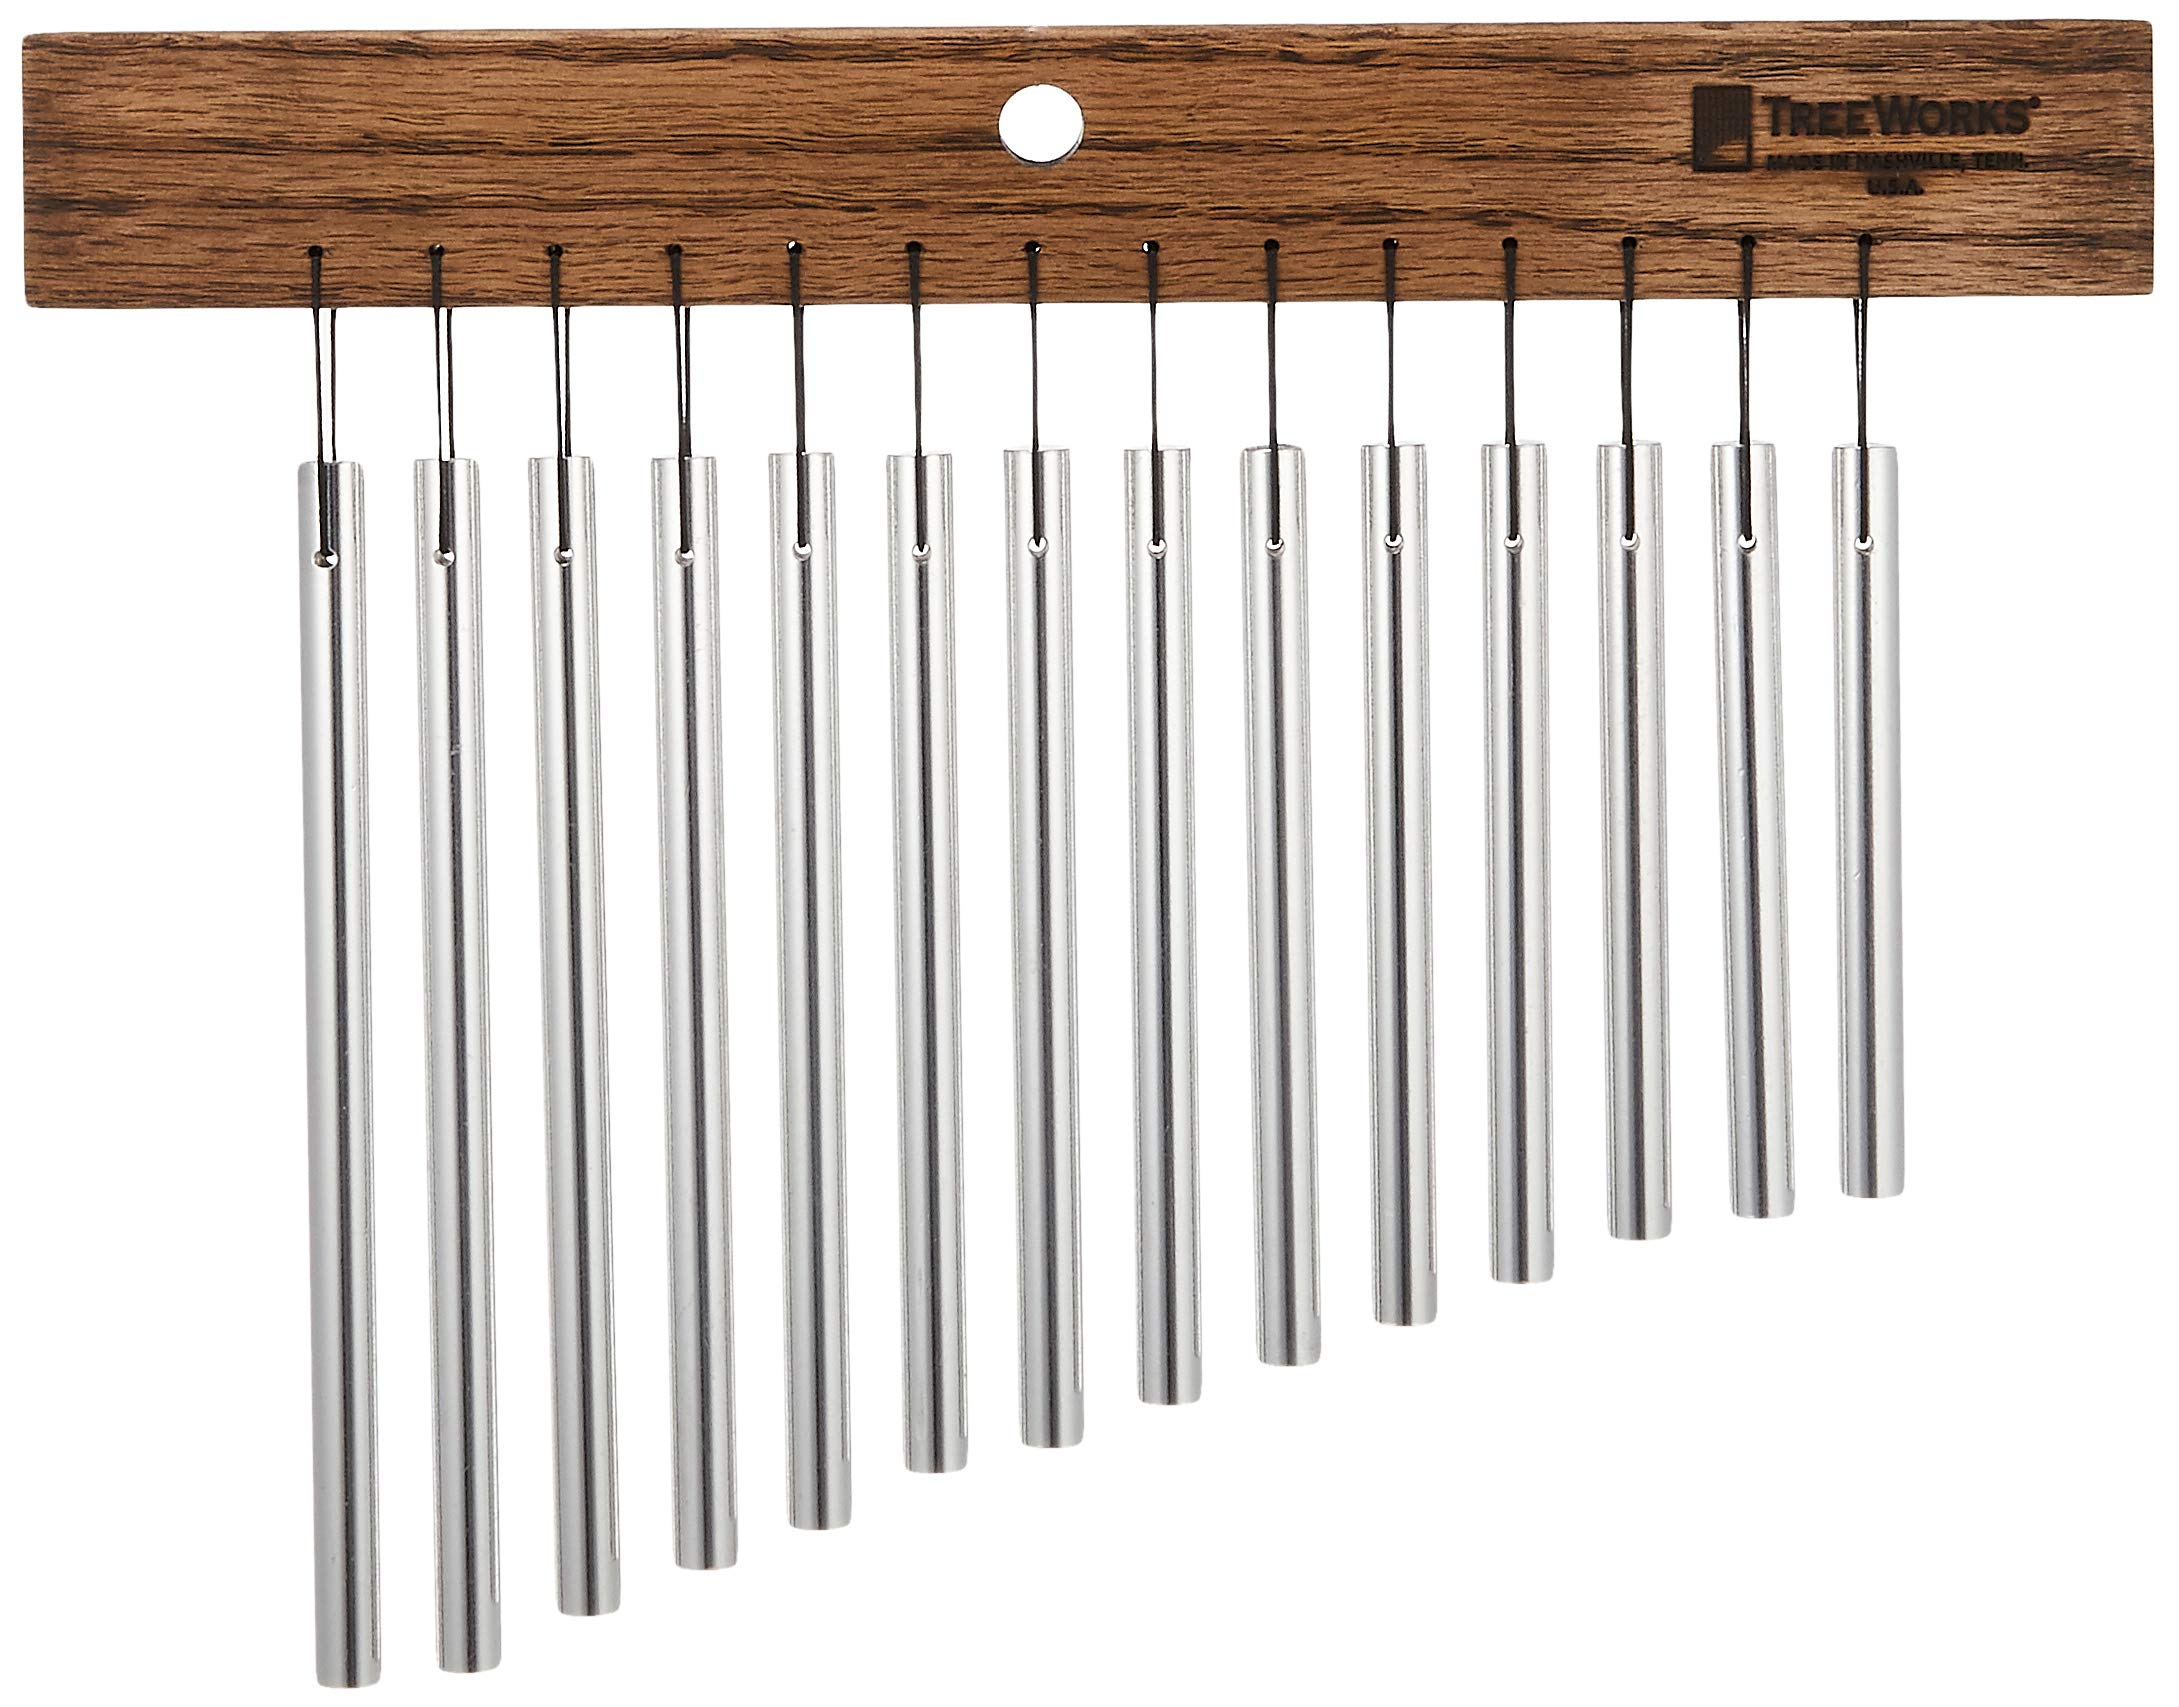 TreeWorks Chimes TRE417 Made in USA Small Single Row Bar Chime, 14-Bar Wind Chime (VIDEO) by TreeWorks Chimes